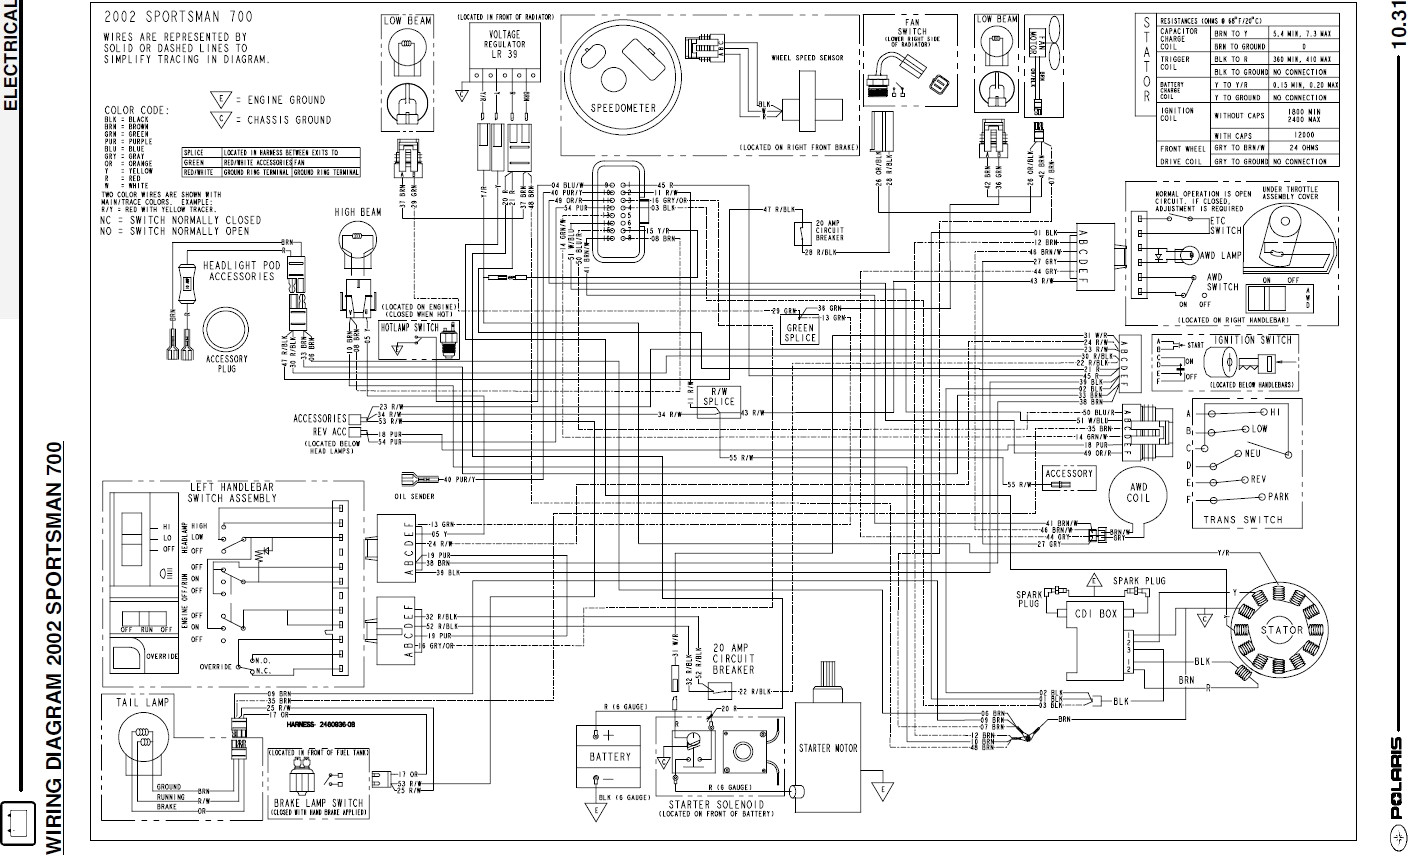 2004 Polaris Sportsman 400 Wiring Diagram Sample Polaris Sportsman 90 Wiring  Diagram 2004 Polaris Sportsman 500 Wiring Diagram